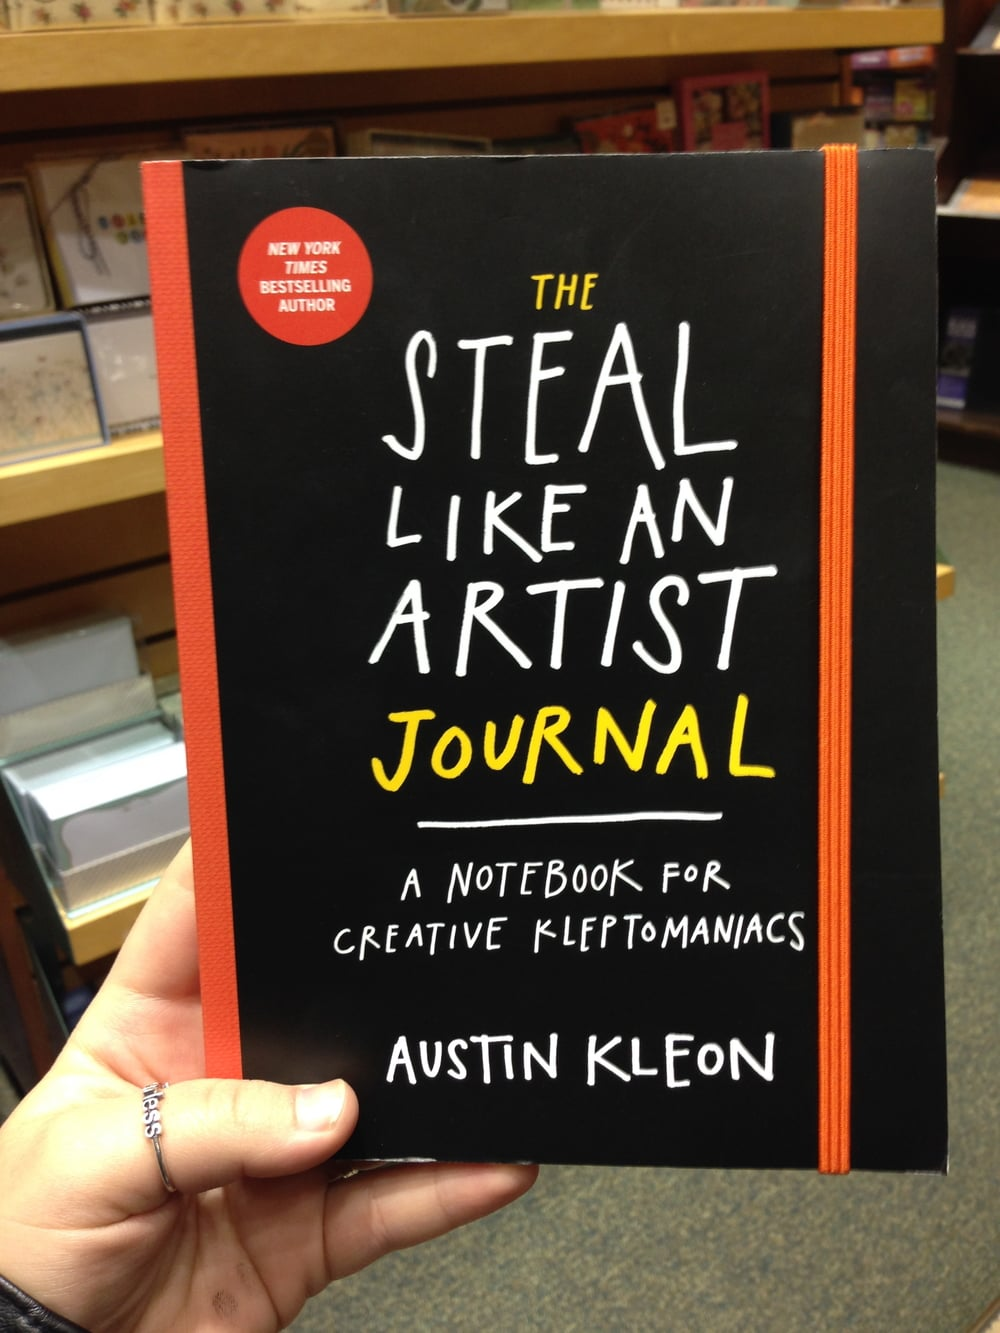 Light reading on how to steal. To indulge in my Klepto side.